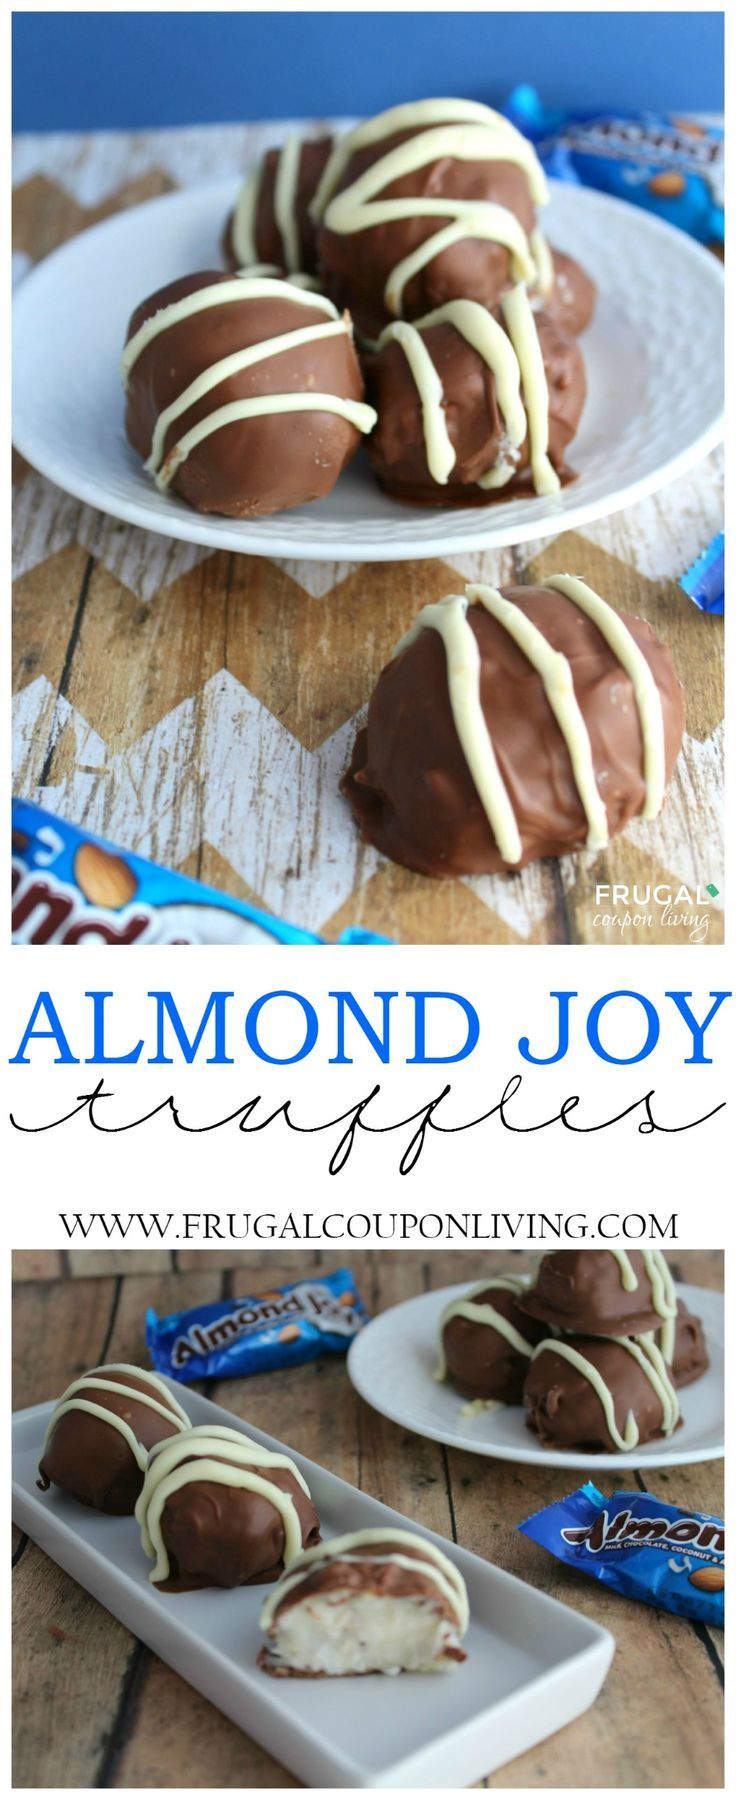 Frugal Coupon Living's Almond Joy Truffles Recipe. Consider these for a cookie e...